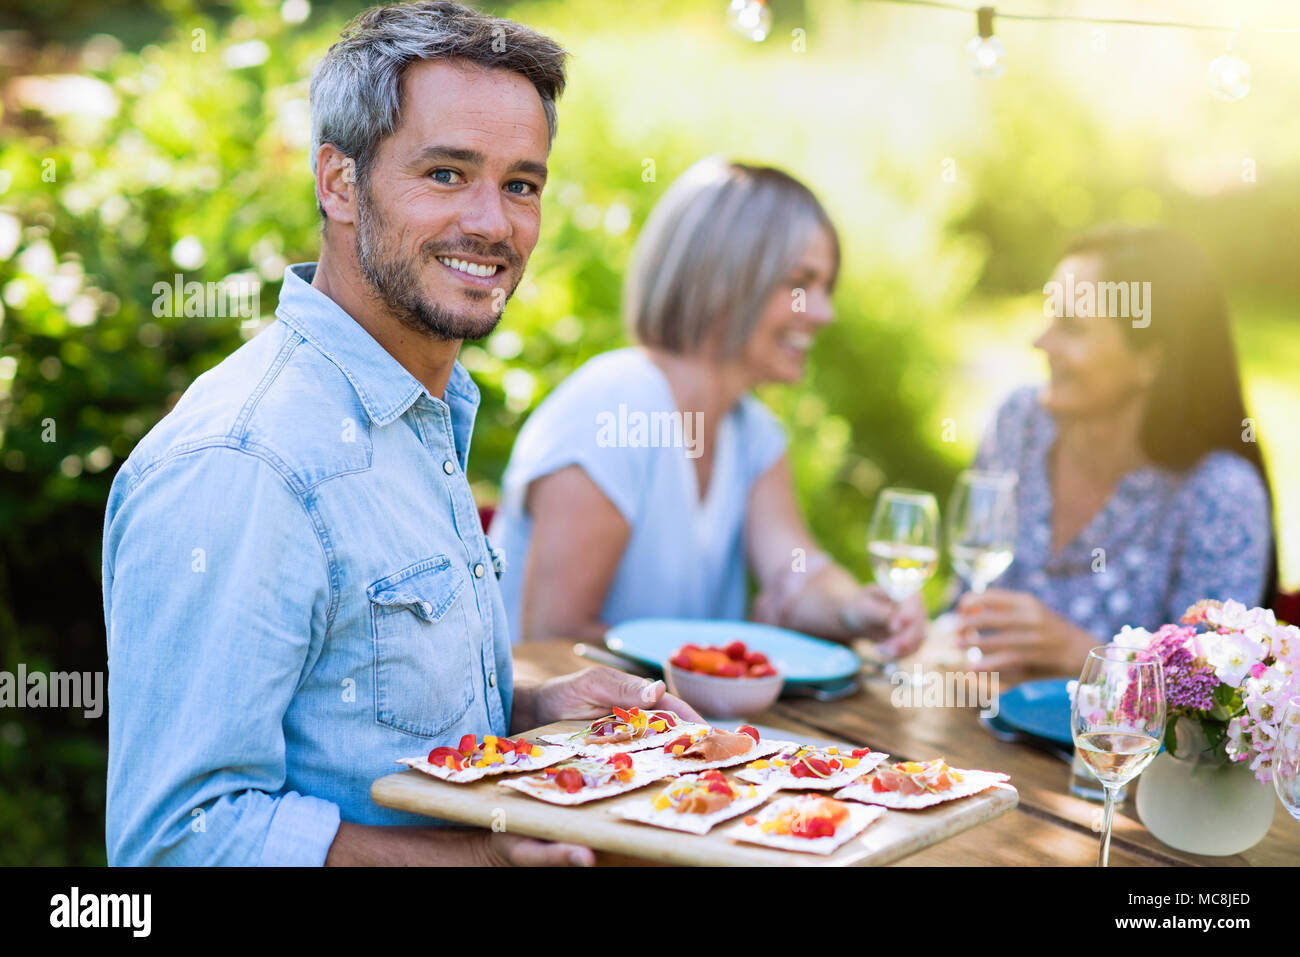 group of friends in their forties gathered around a table in the garden to share a meal. A man offers snacks to guests while looking at the camera - Stock Image